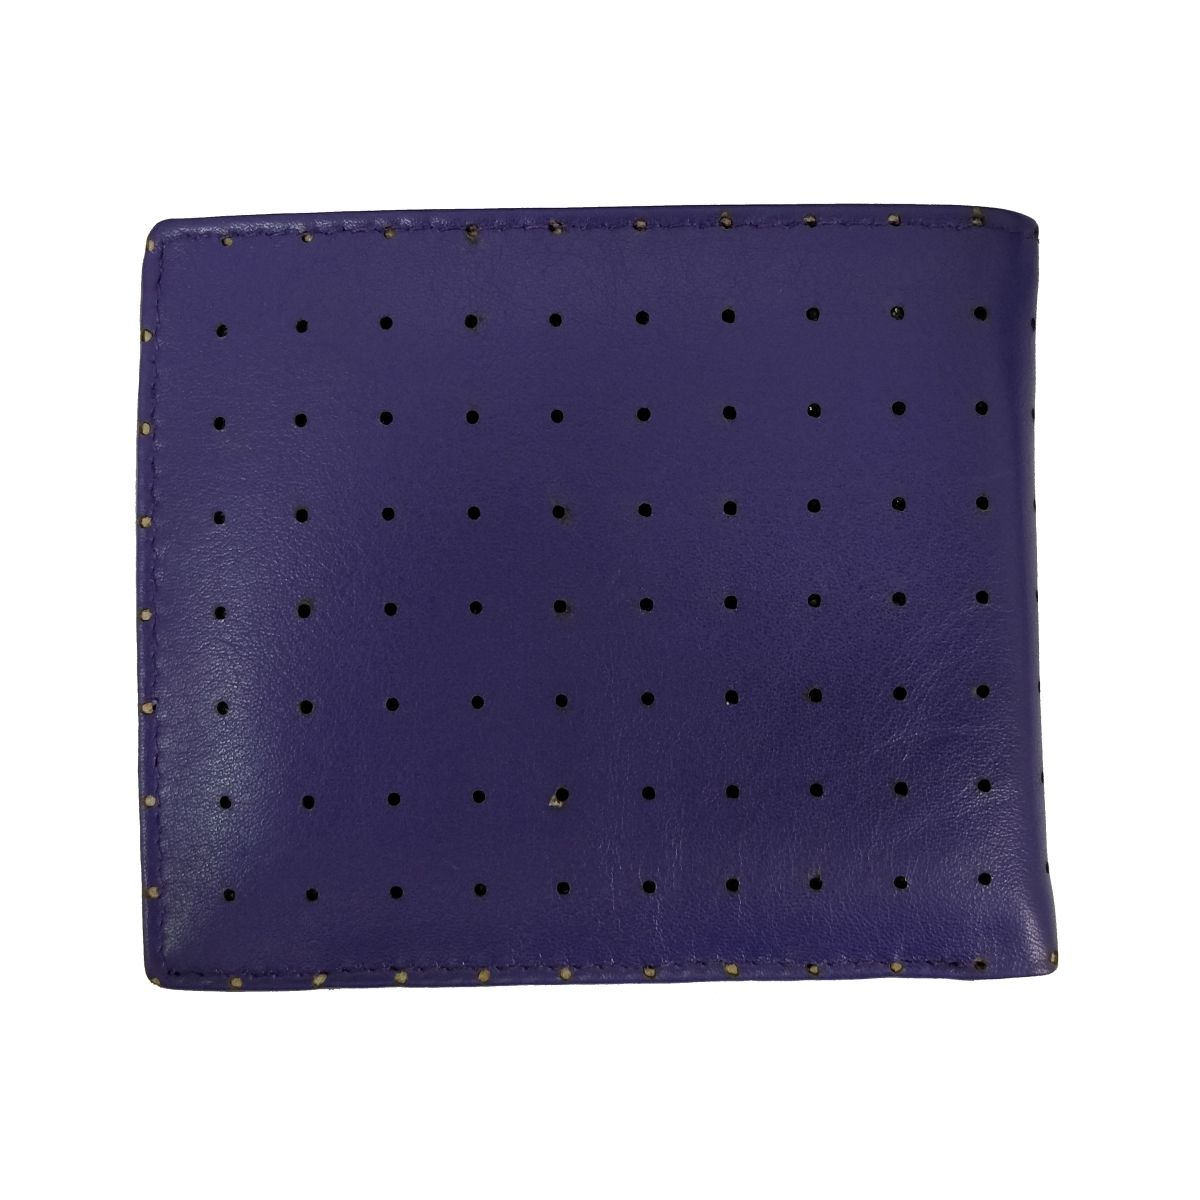 solo Leather Wallet Perforated With Coin Pouch - Blue